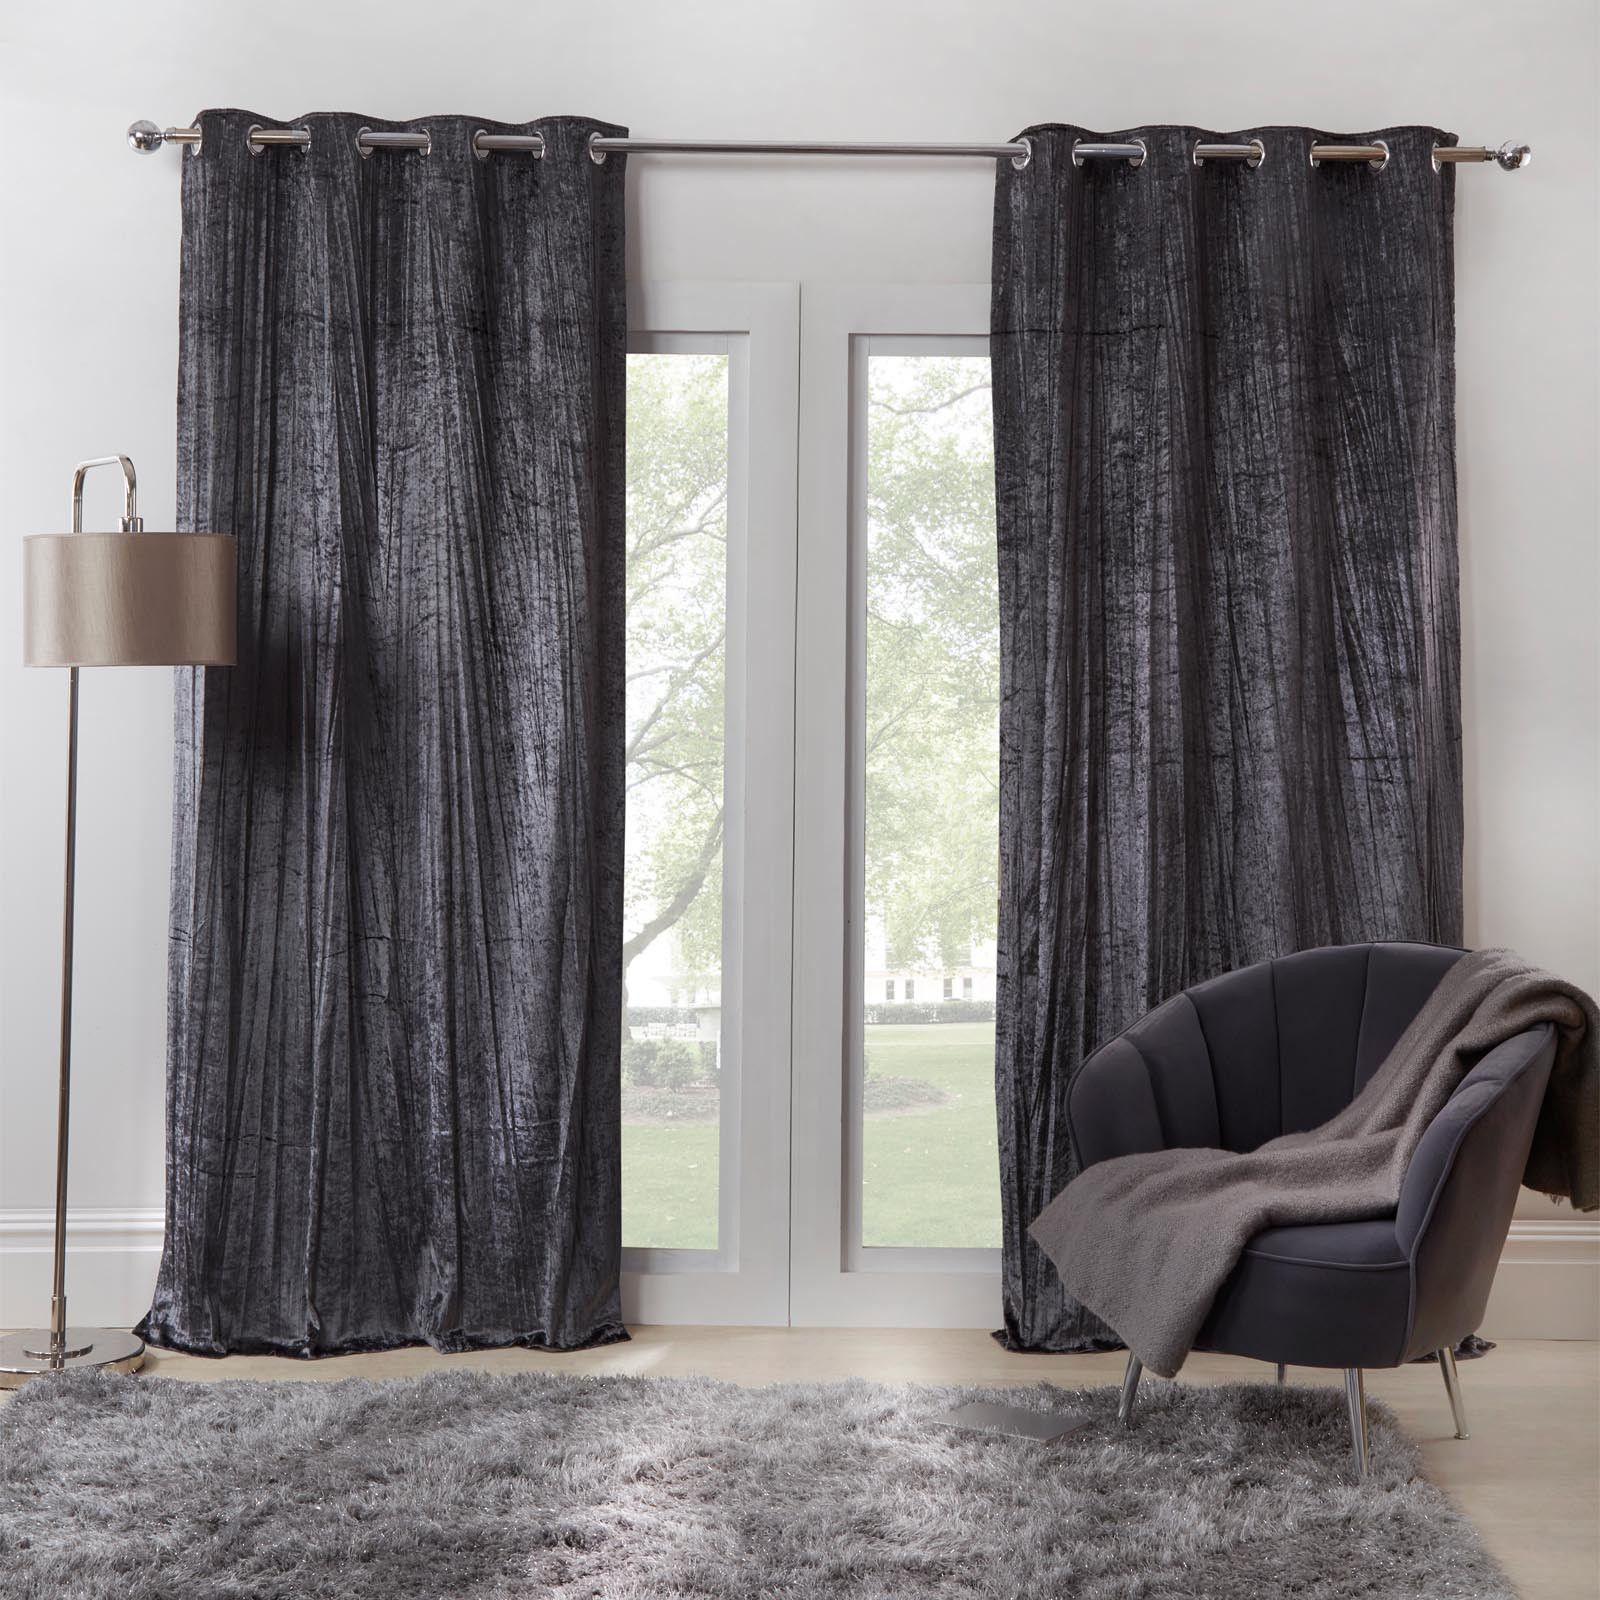 Pin On Curtain Products